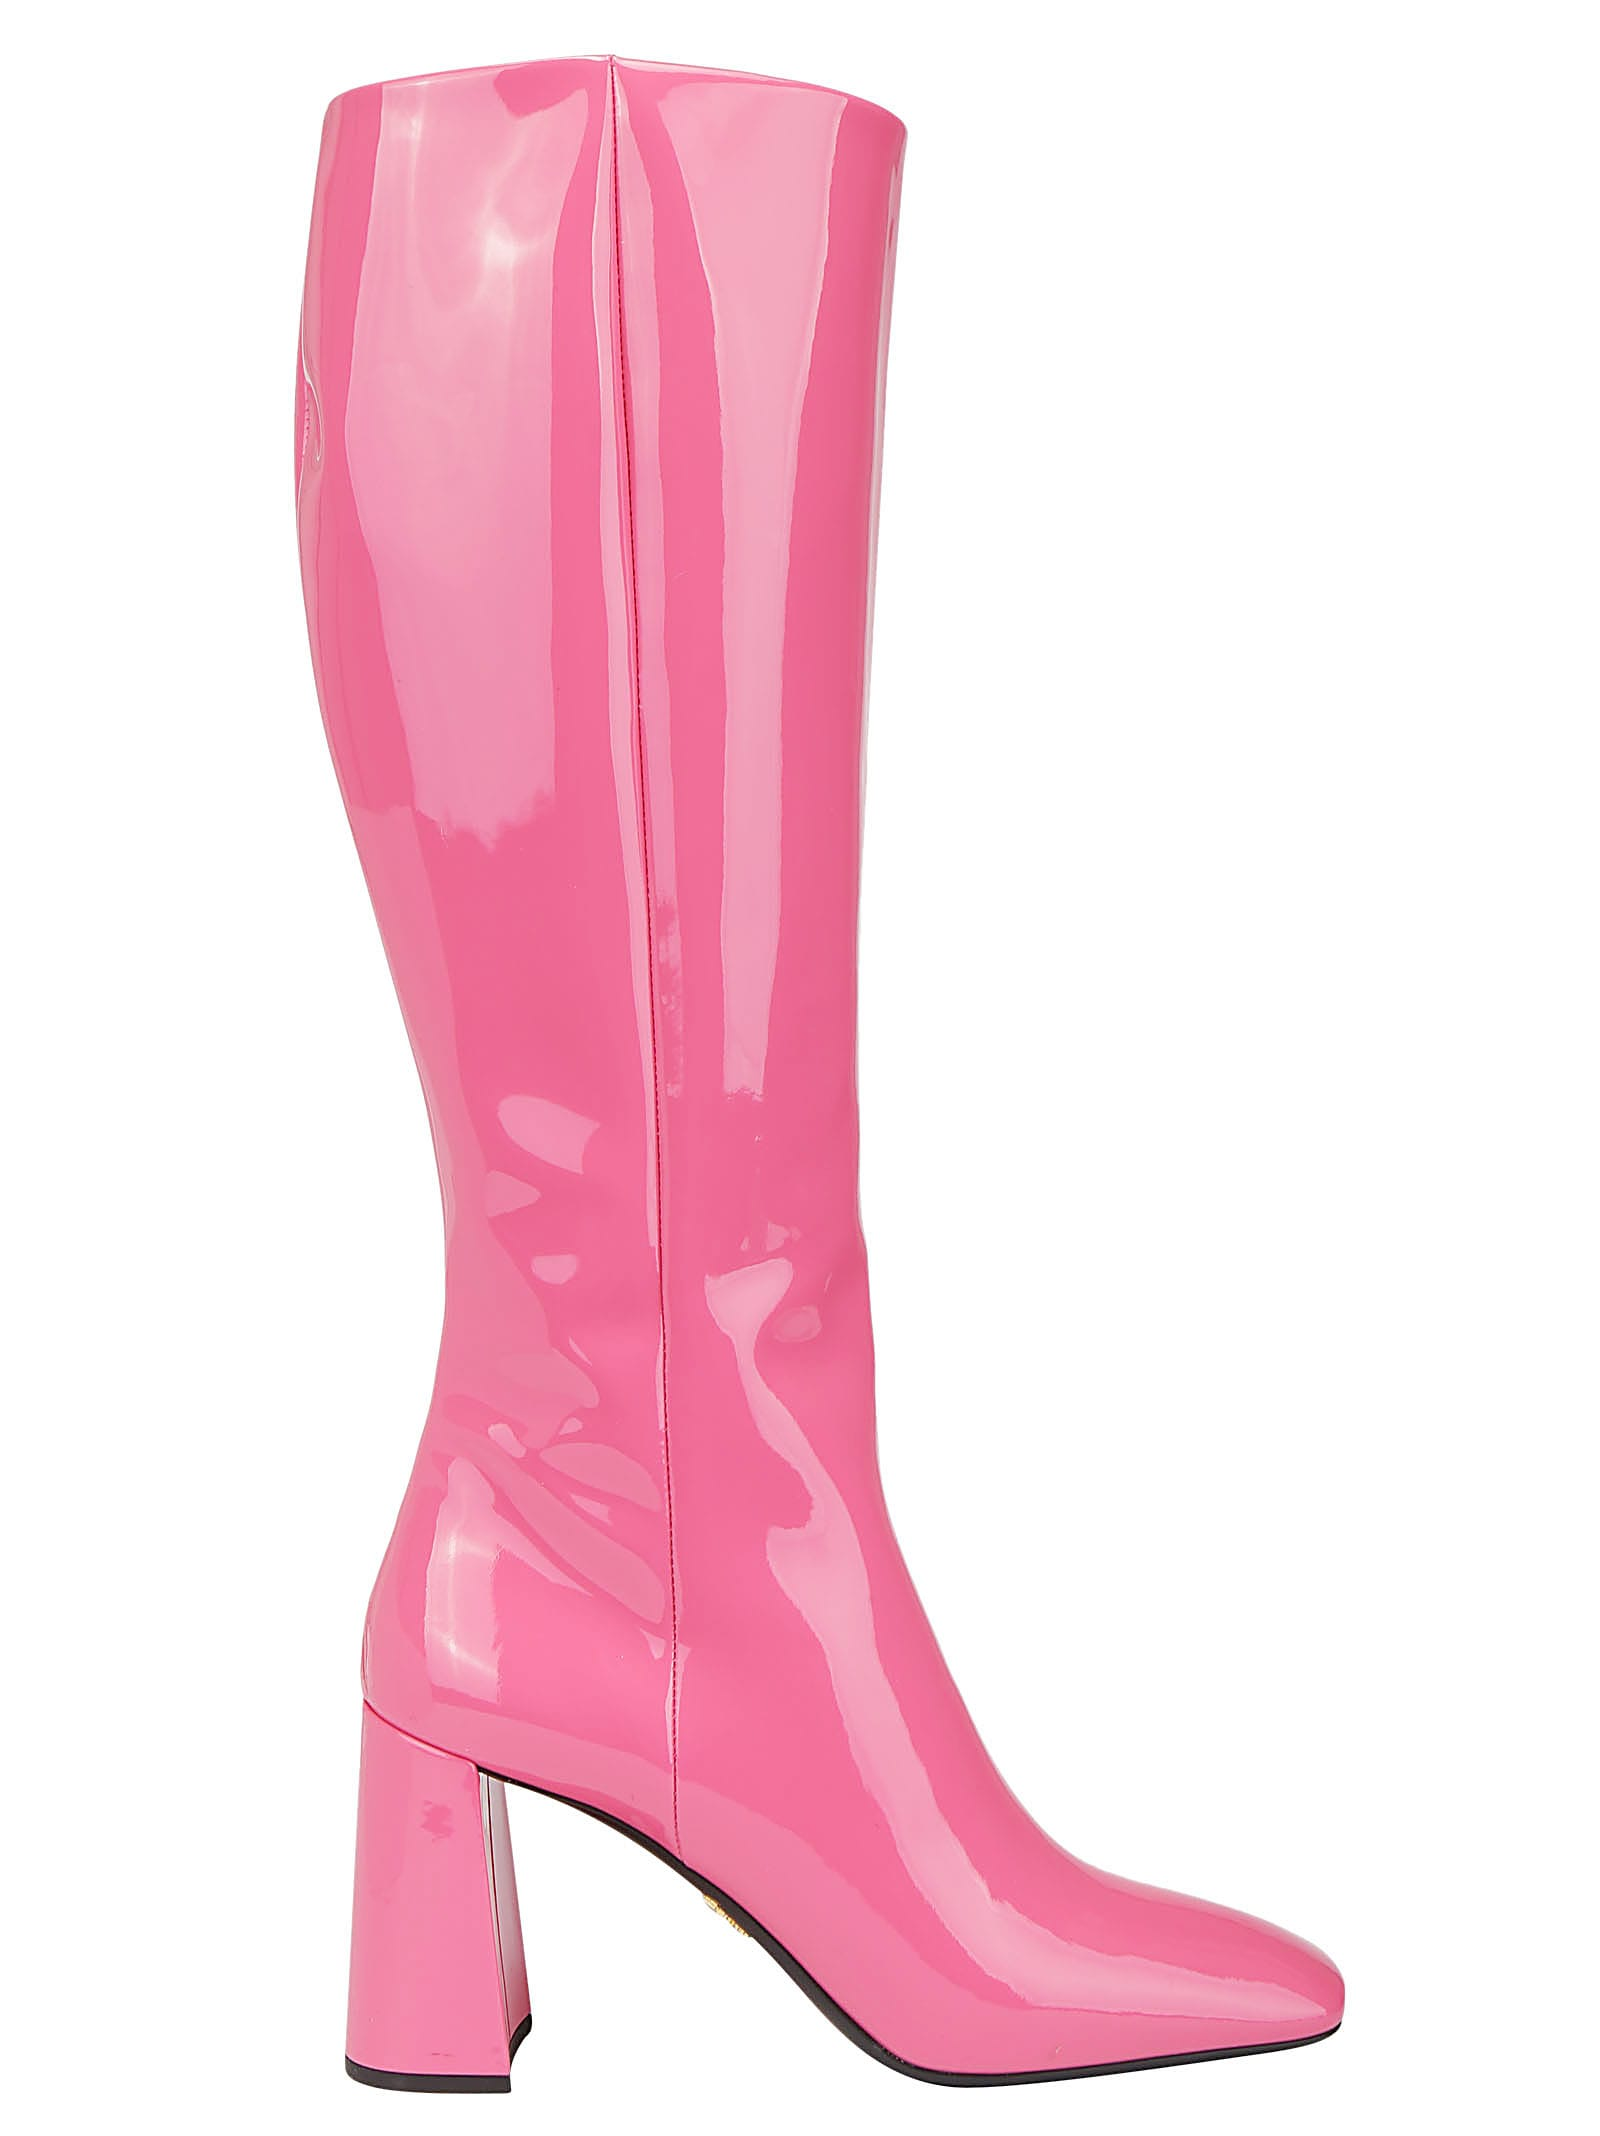 Prada Boots In Pink